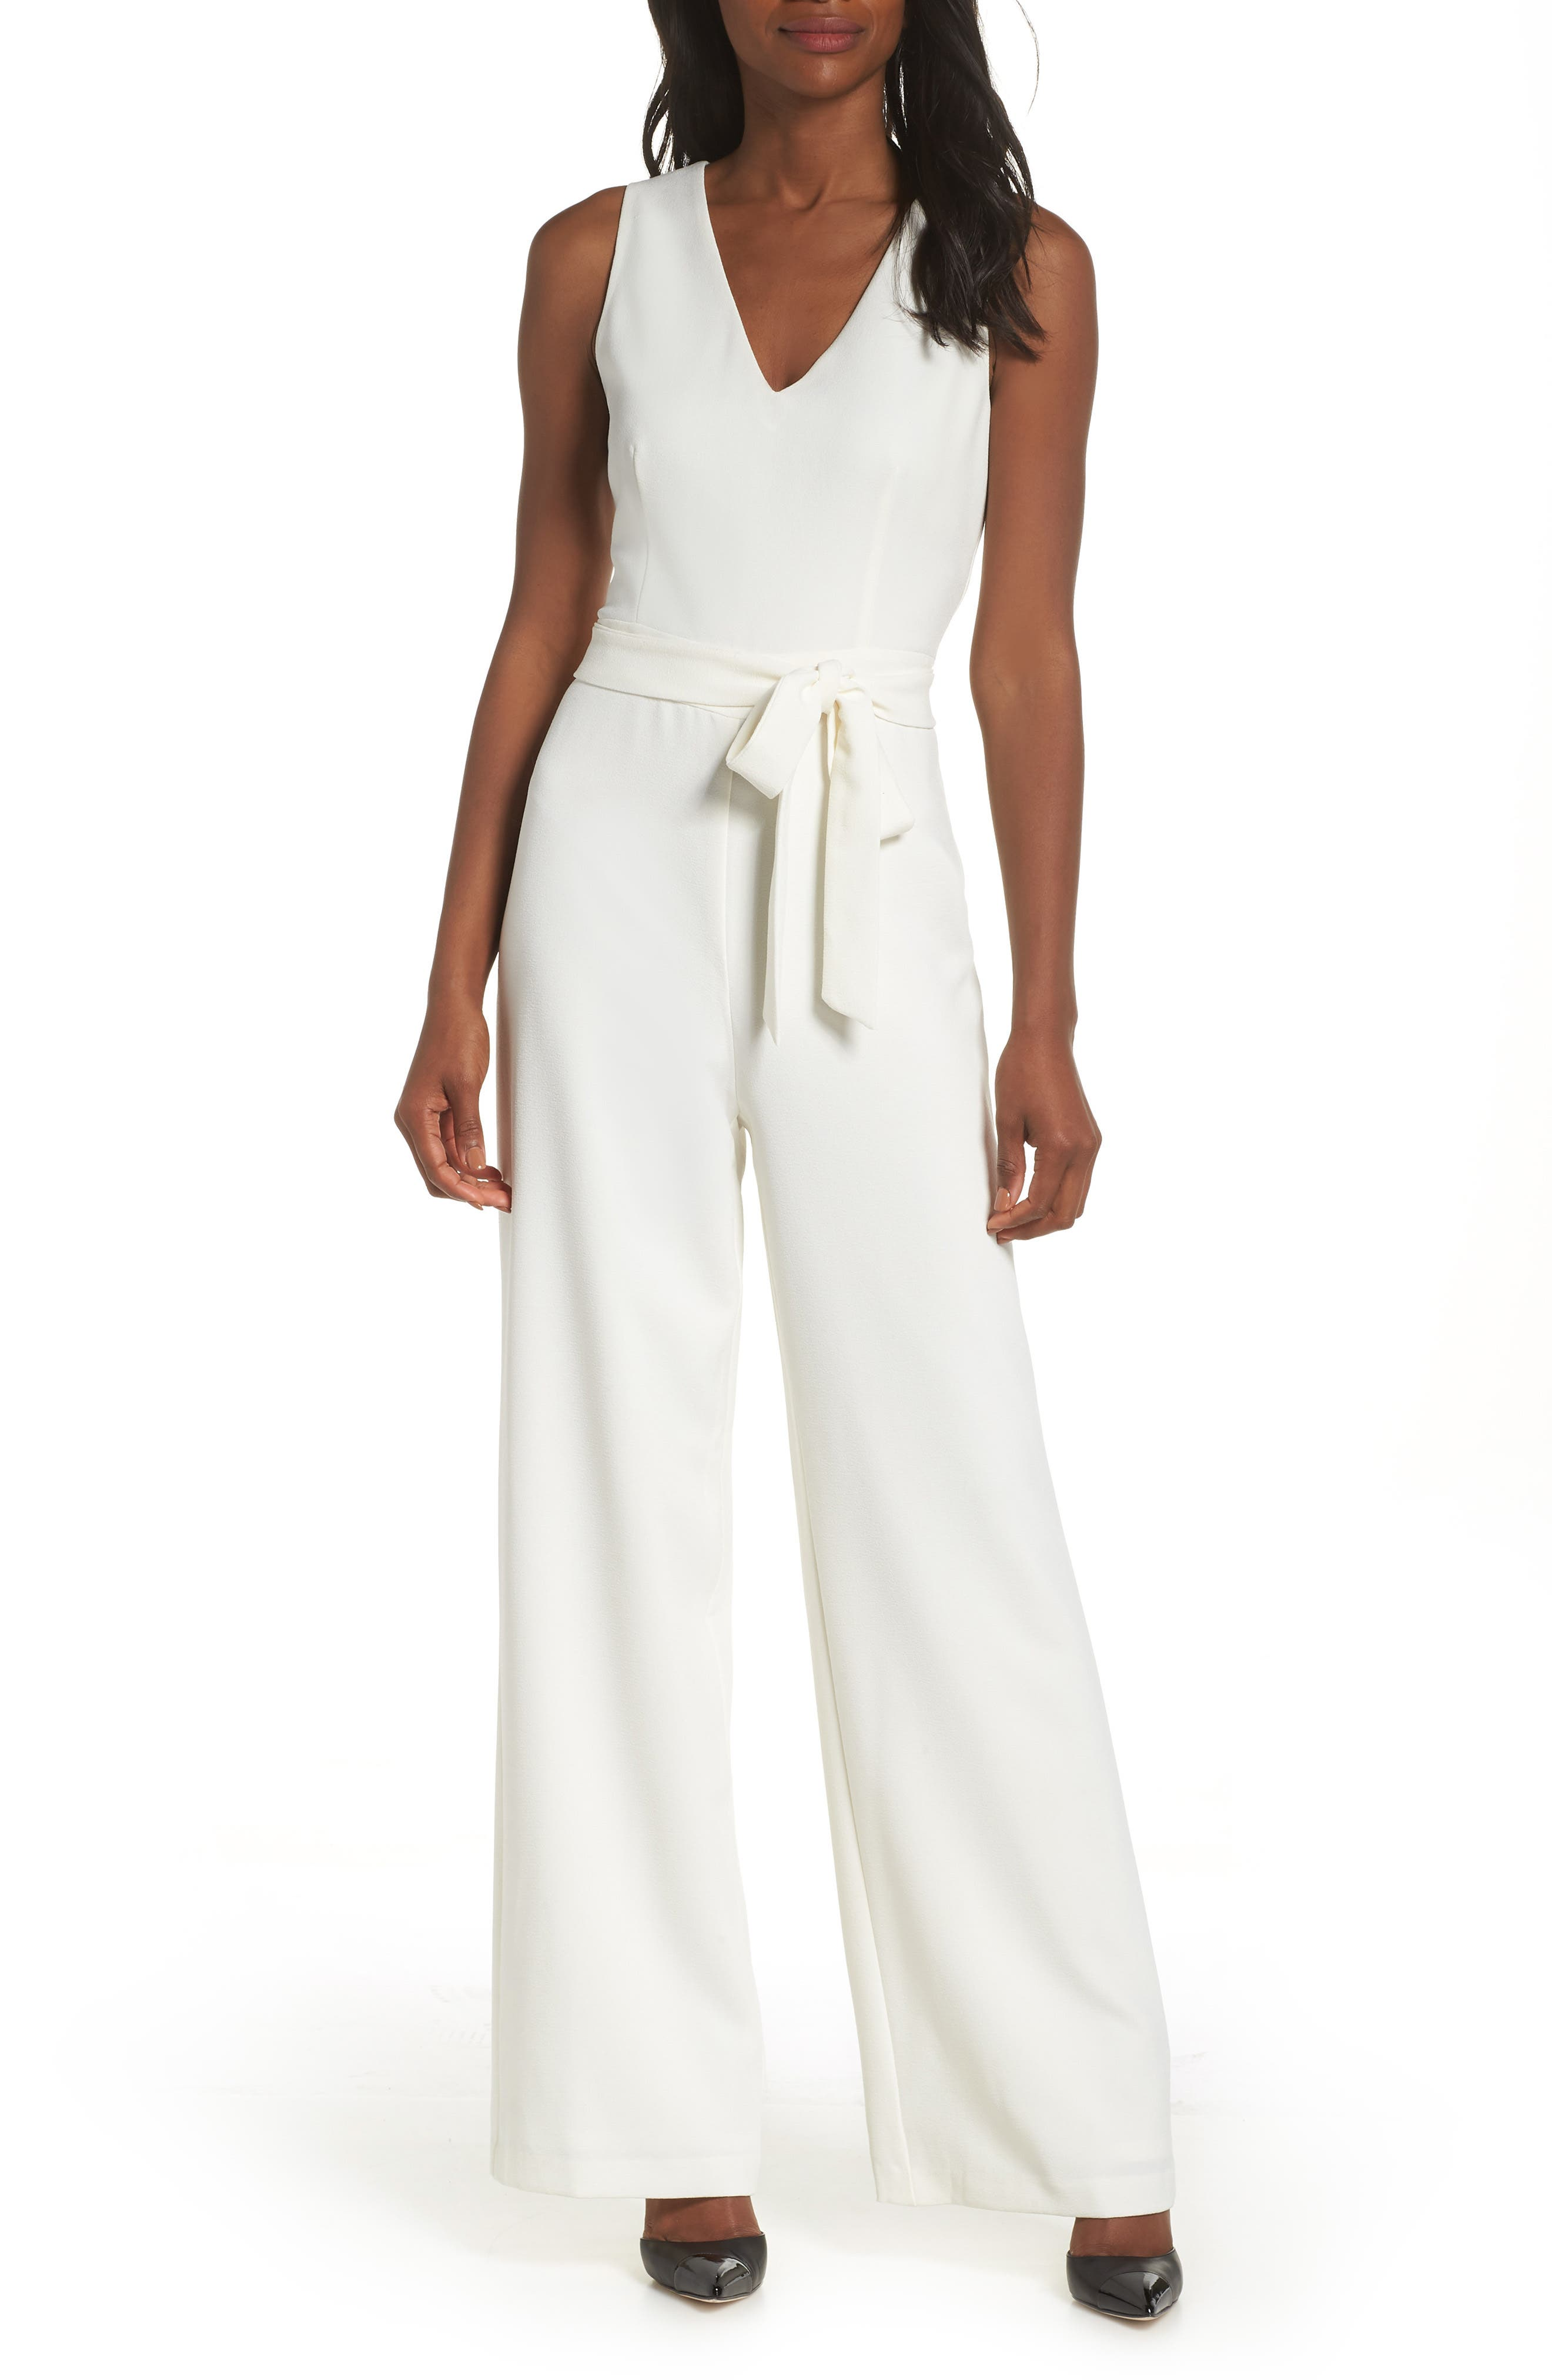 70s Jumpsuit | Disco Jumpsuits – Sequin, Striped, Gold, White, Black Womens Vince Camuto Tie Front Wide Leg Jumpsuit Size 4 - White $99.00 AT vintagedancer.com